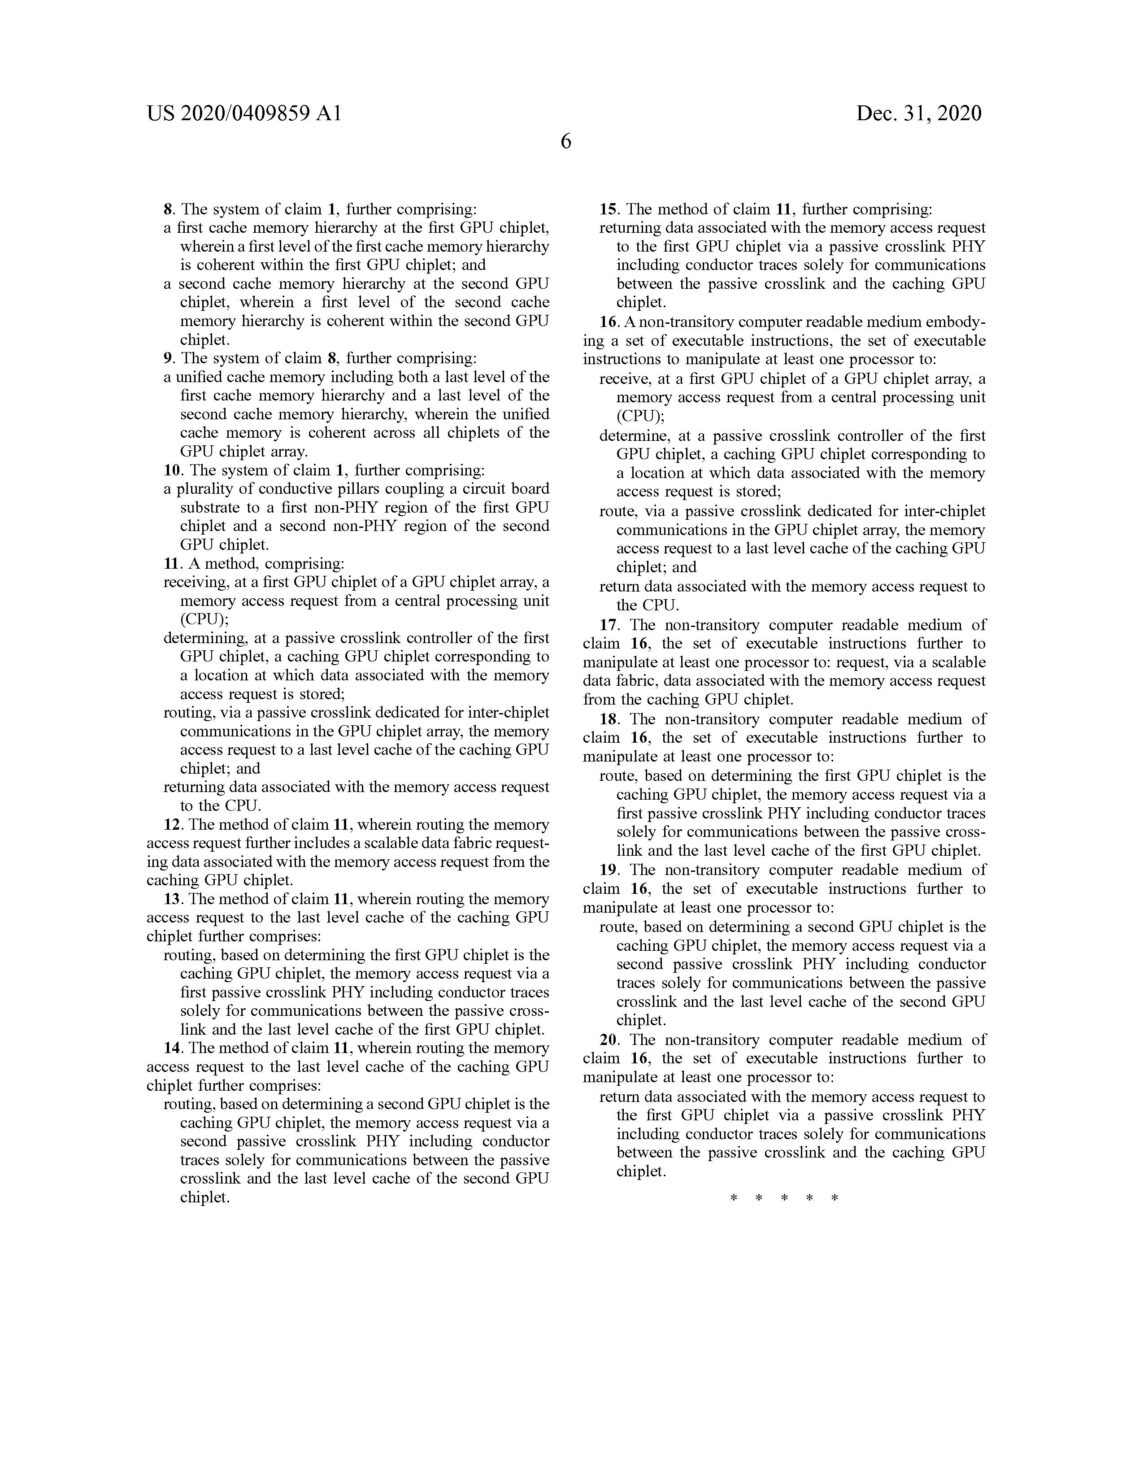 us20200409859a1-page-013